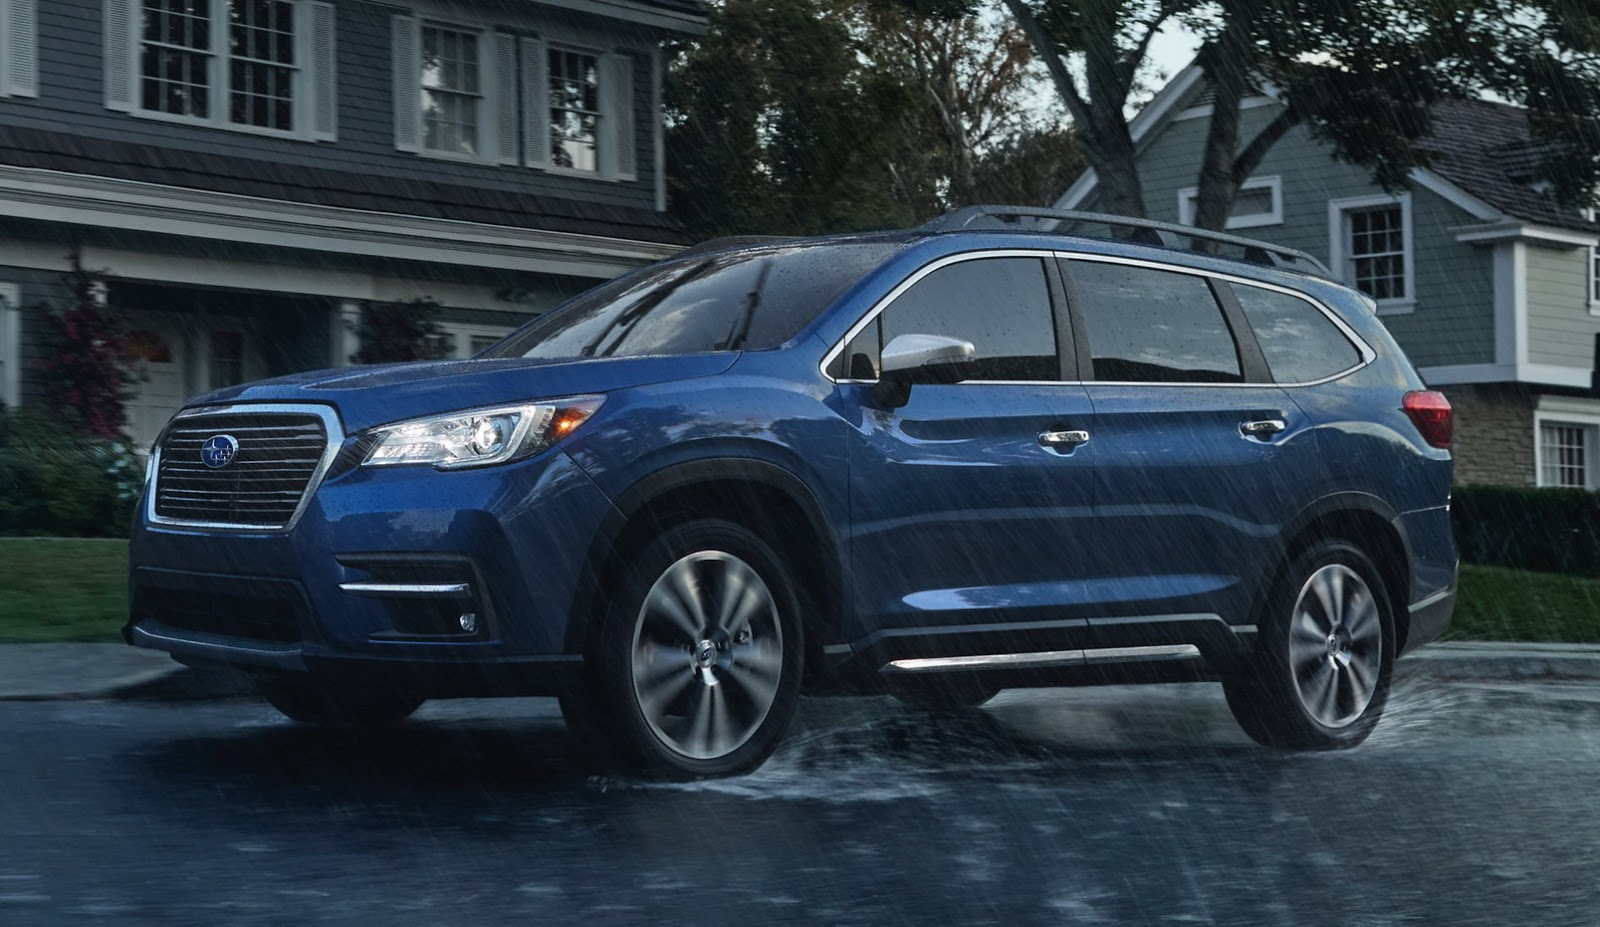 2019 Subaru Ascent Production Will Create New Jobs At Indiana Plant - autoevolution